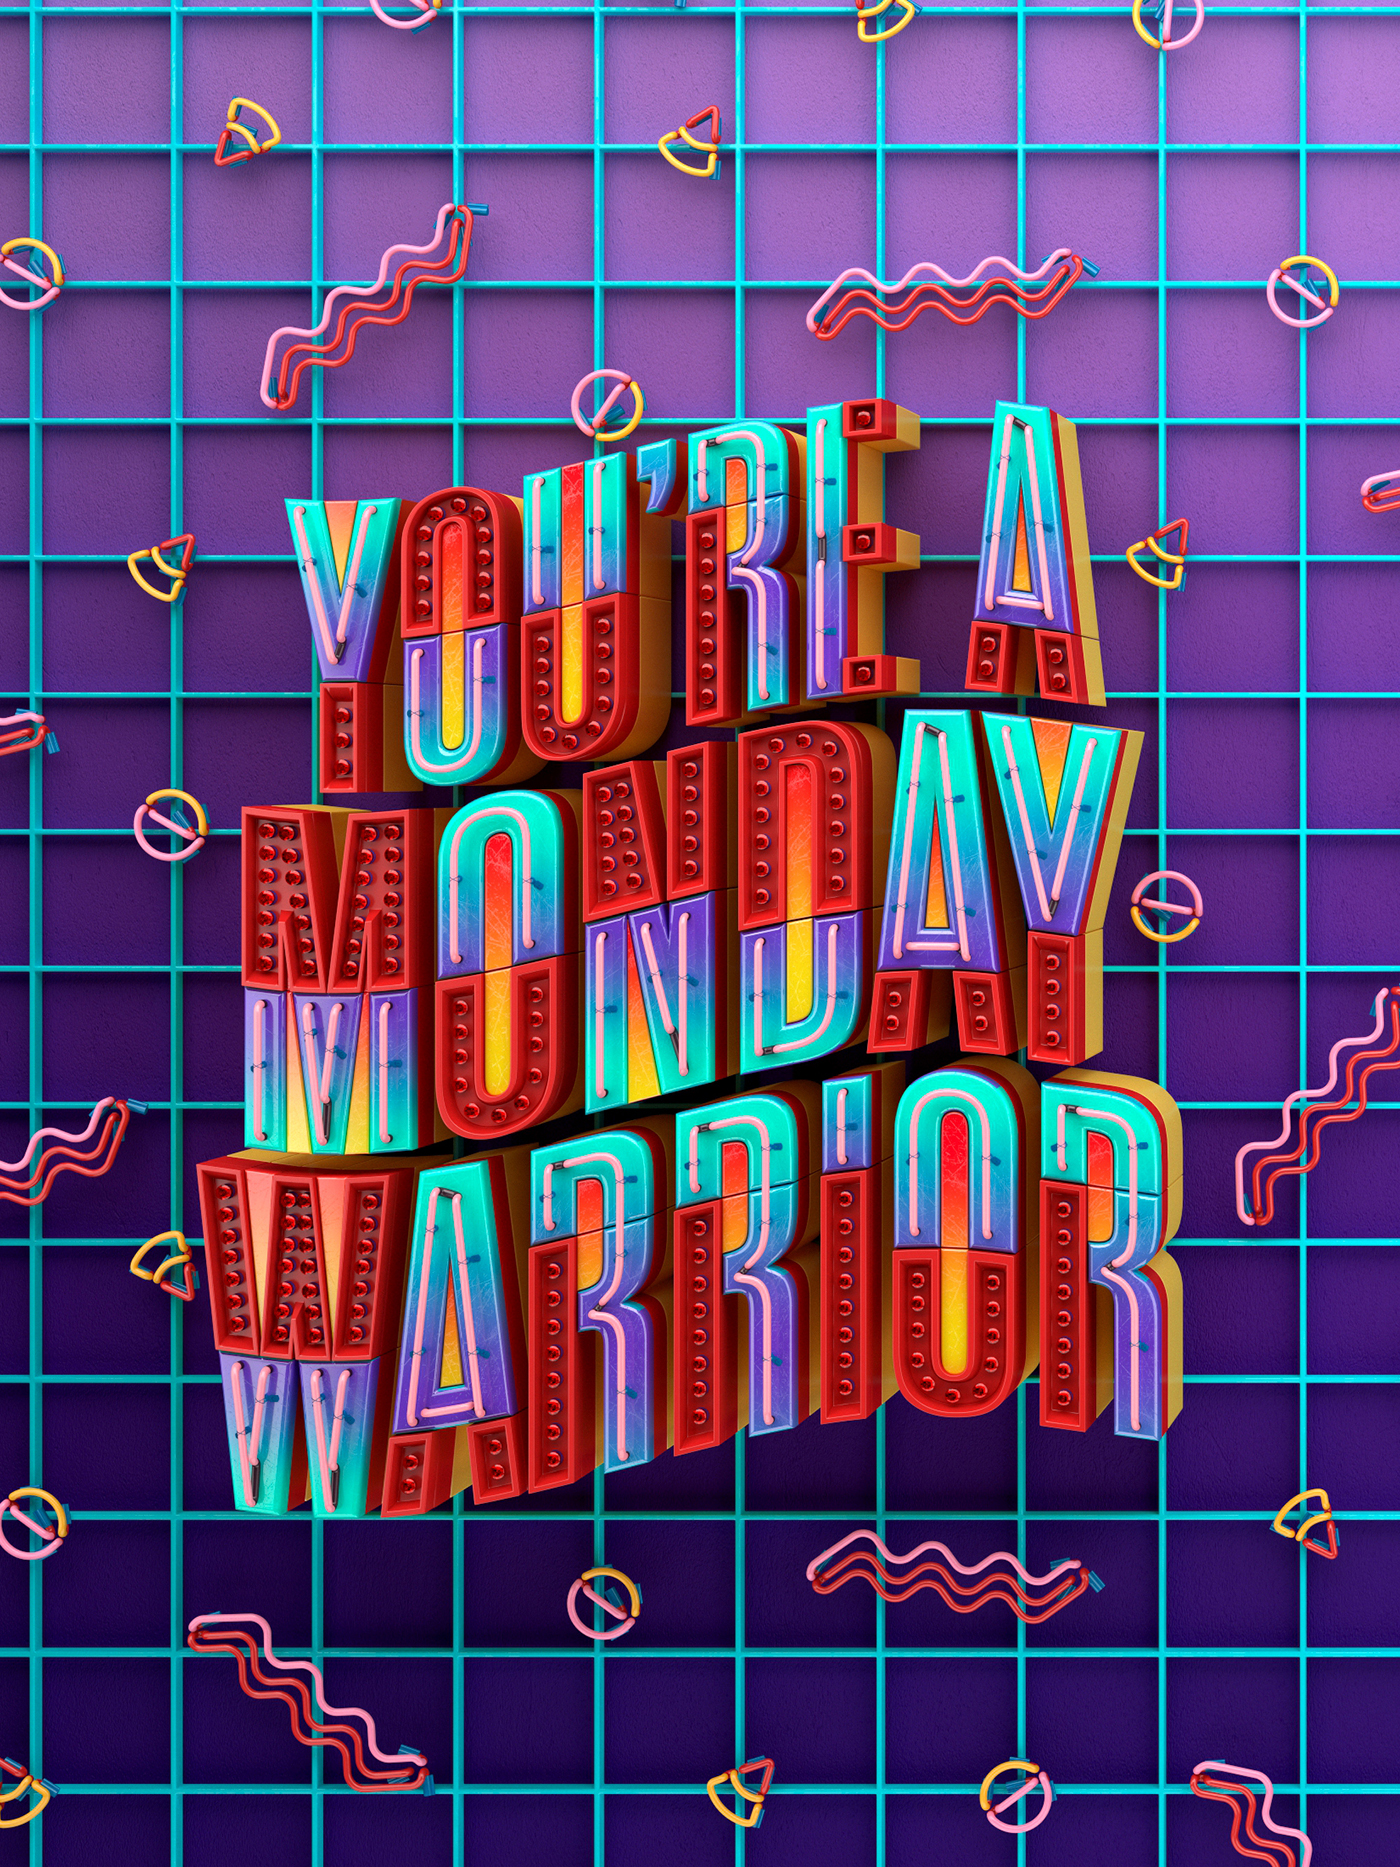 MONDAY WARRIOR 2web